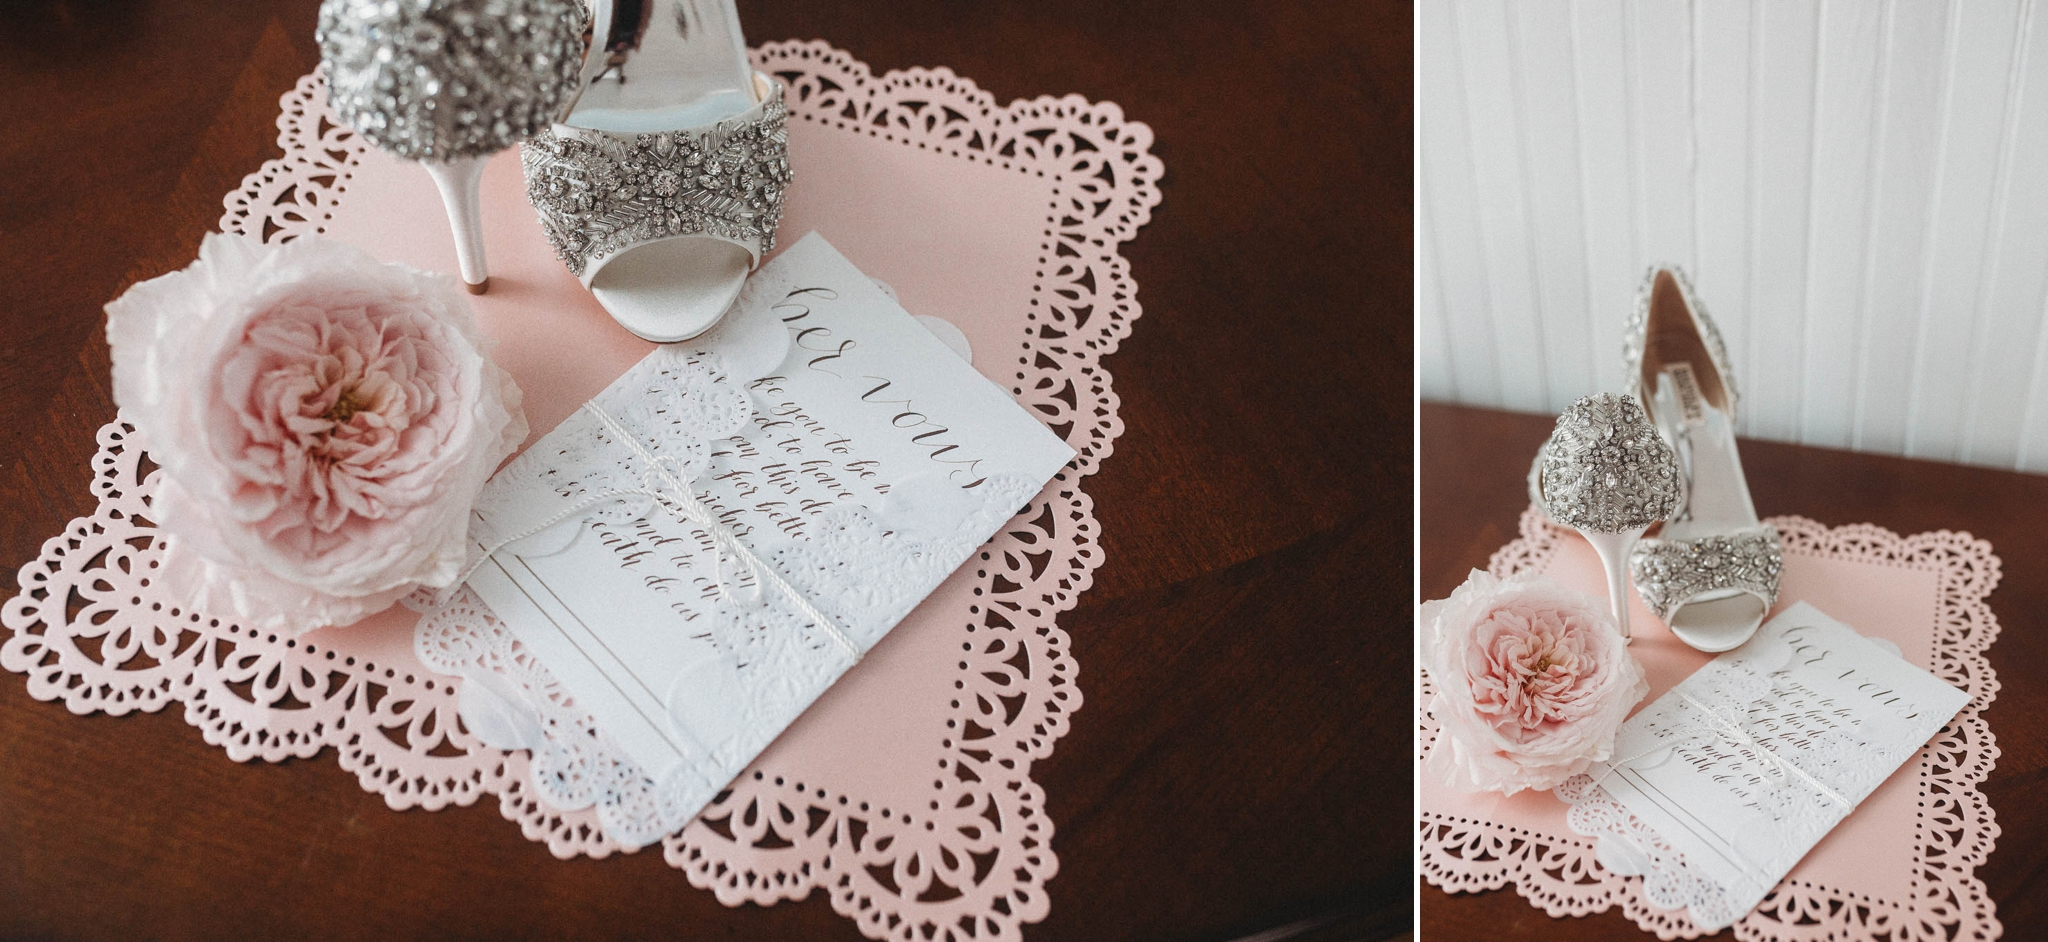 Details of the Bridal Shoes and her vows, Raleigh North Carolina Wedding Photographer